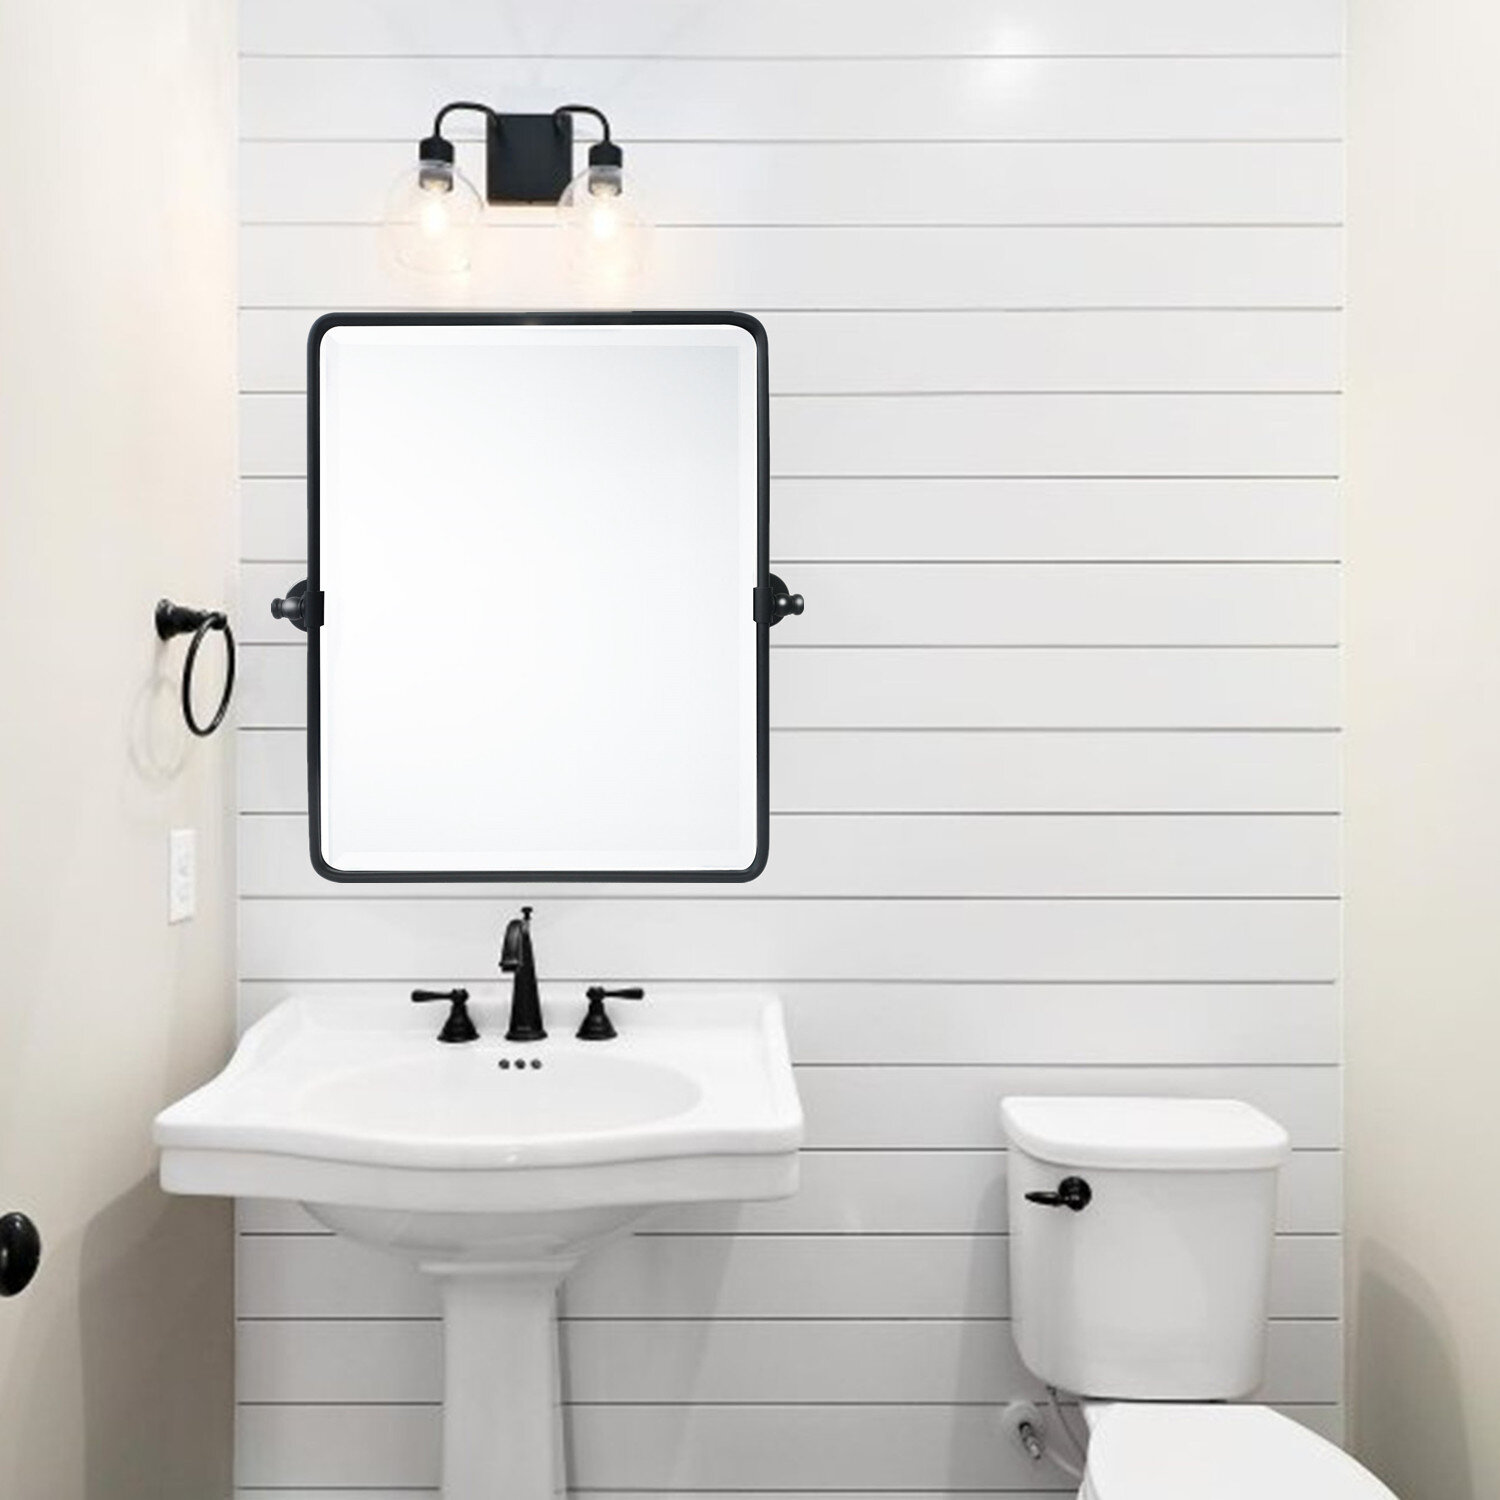 Bathroom Vanity Tilt Mirrors You Ll Love In 2021 Wayfair